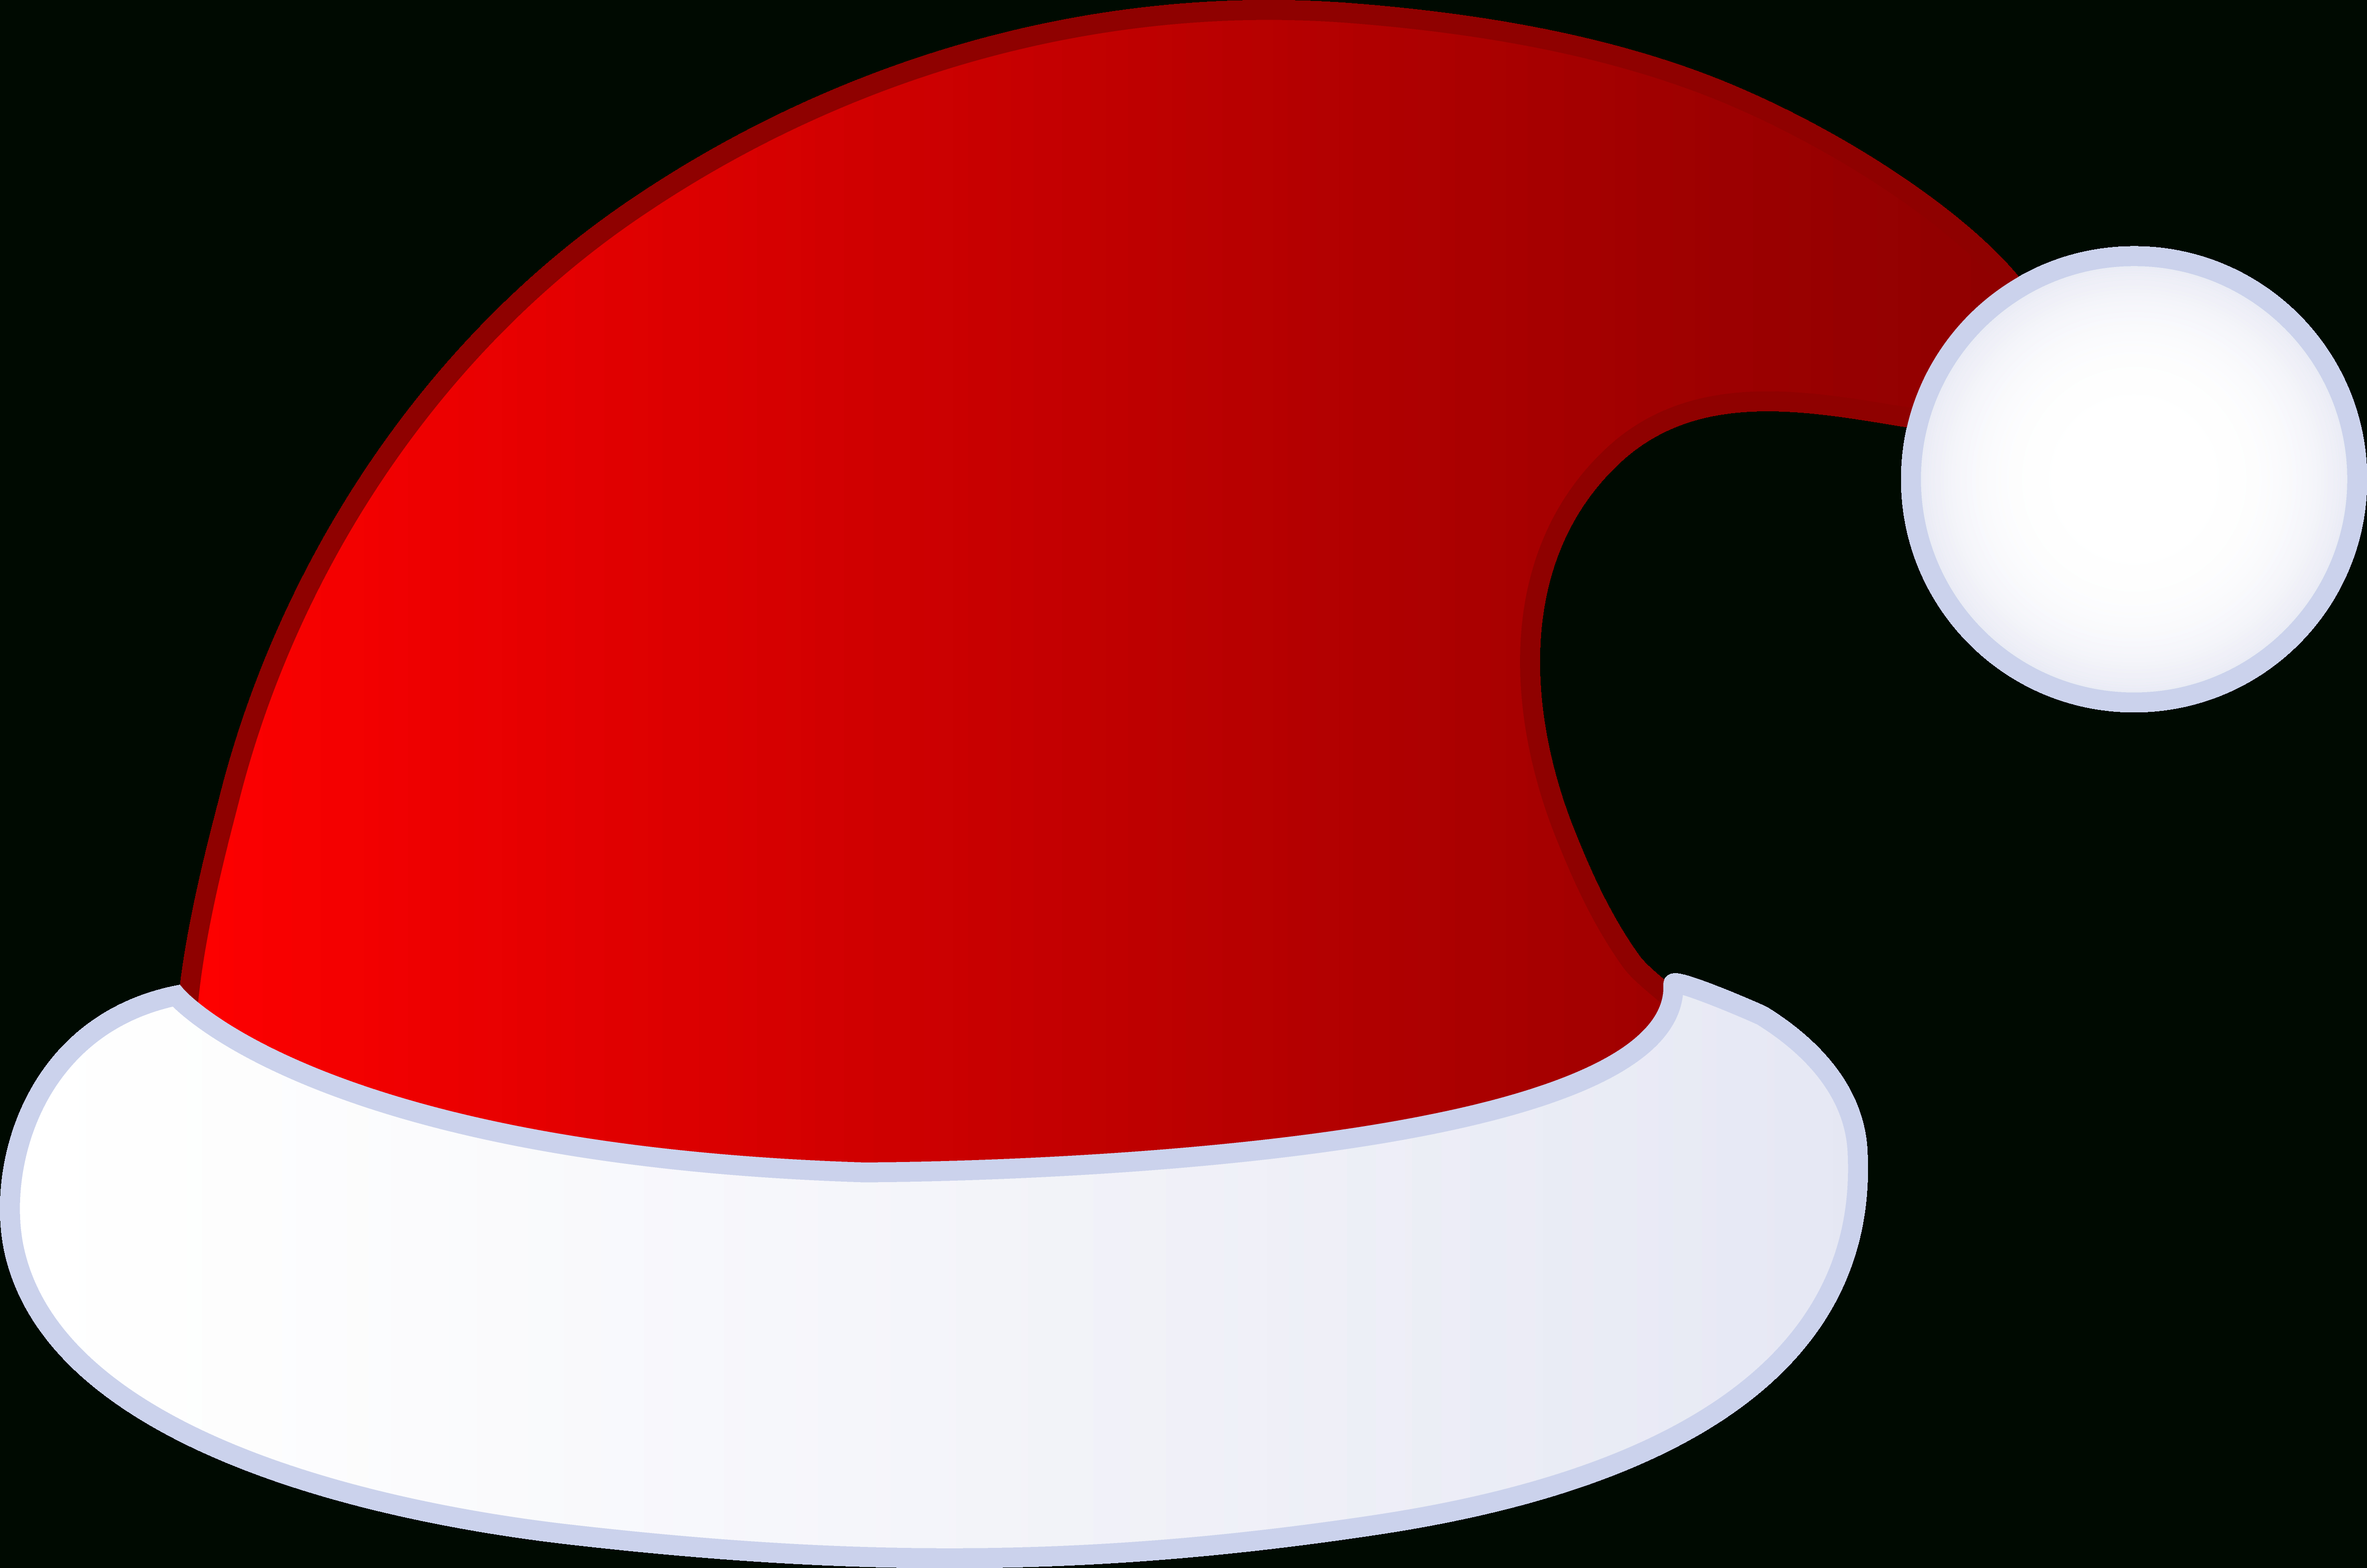 Free Santa Hat On Picture, Download Free Clip Art, Free Clip Art On - Free Printable Santa Hat Patterns